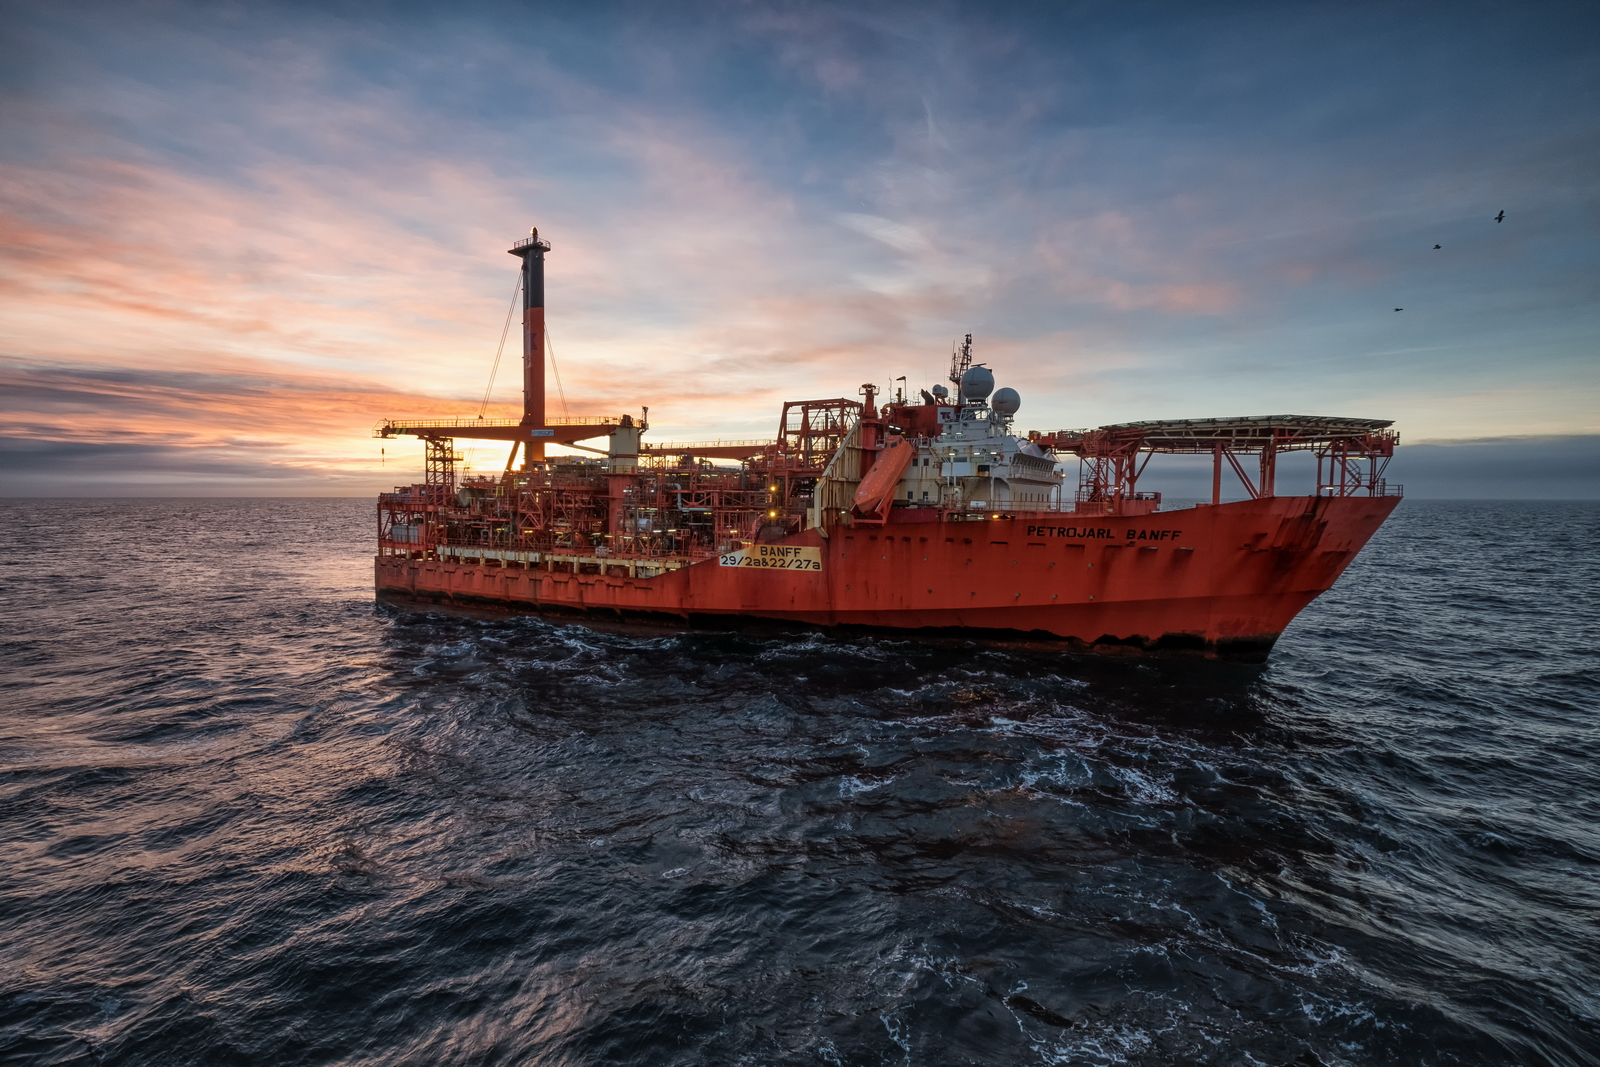 Petrojarl Banff – FPSO Petrojarl Banff under the Sunrise. This unit is a part of Banff Oilfield located on the North Sea. Fuji XPro-2, XF 10-20, 1/125s, f8, ISO 200